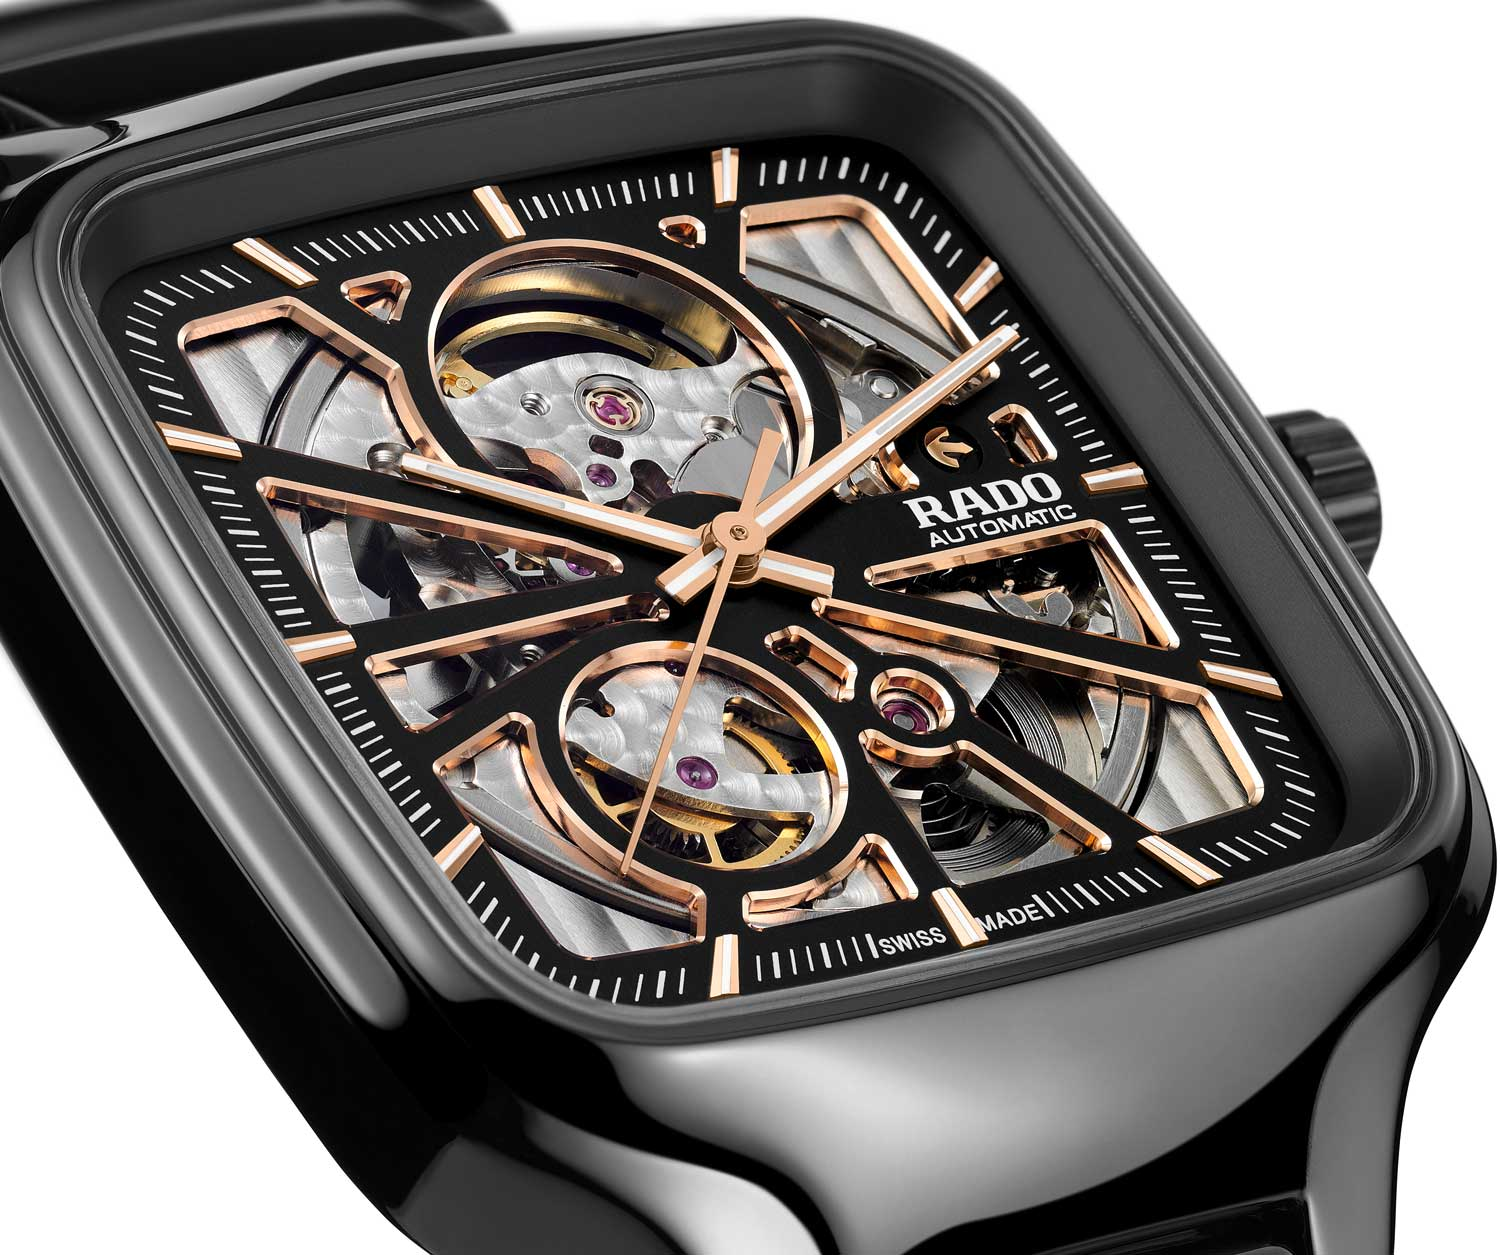 The Rado True Square Open Heart's case is of a monobloc construction in polished black ceramic